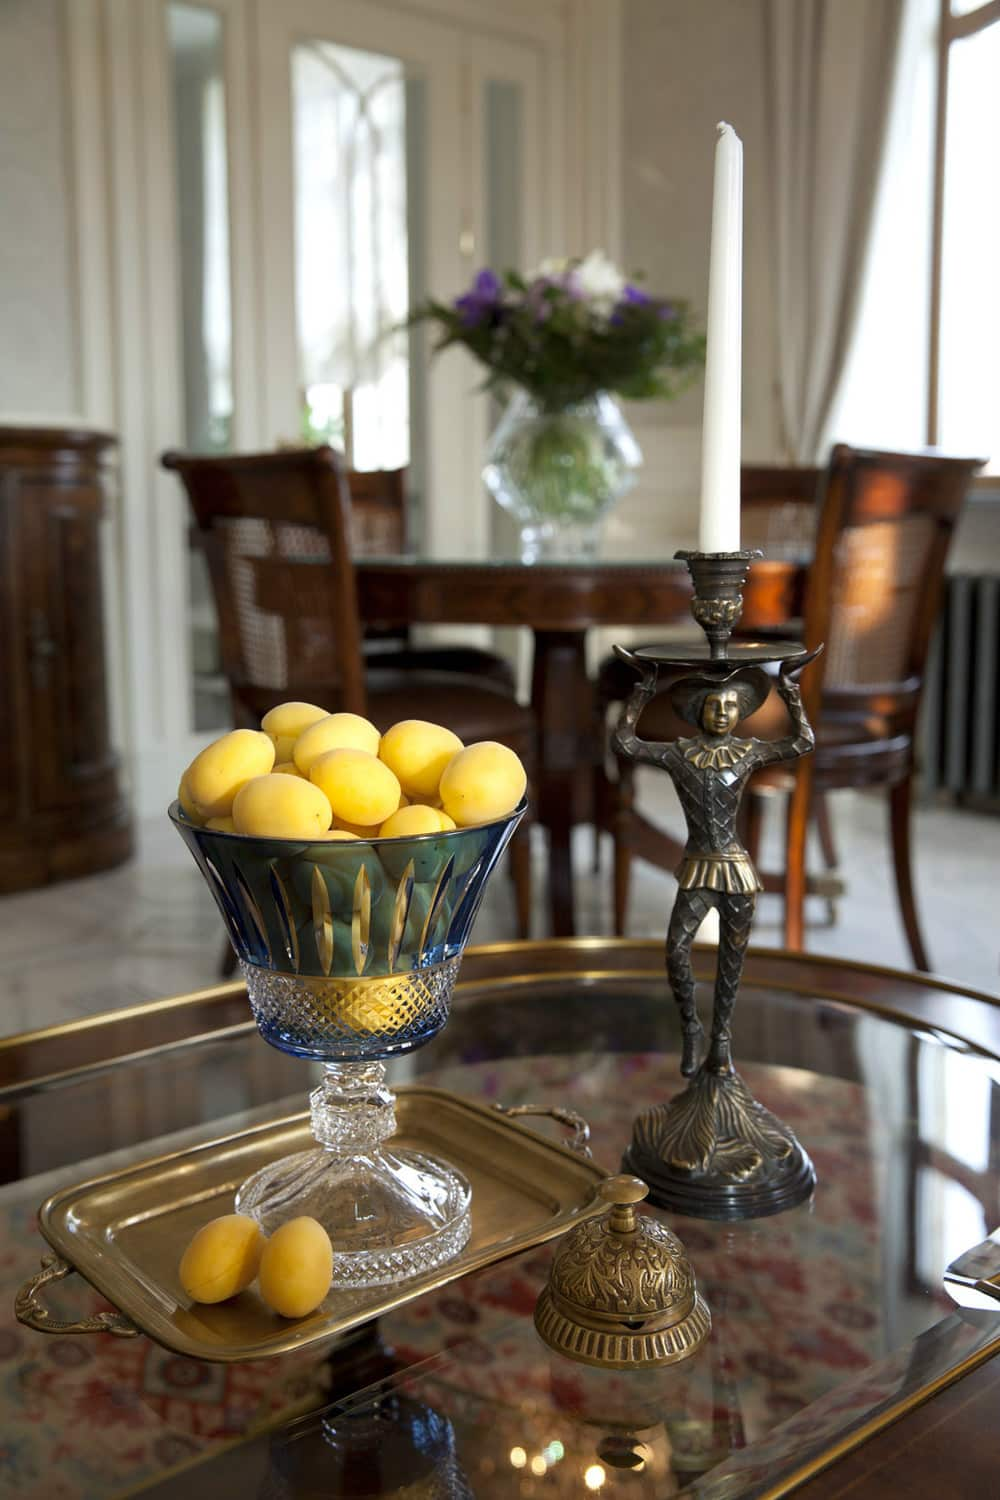 Unusual wooden retro furniture and the lemon cup at the table as decoration